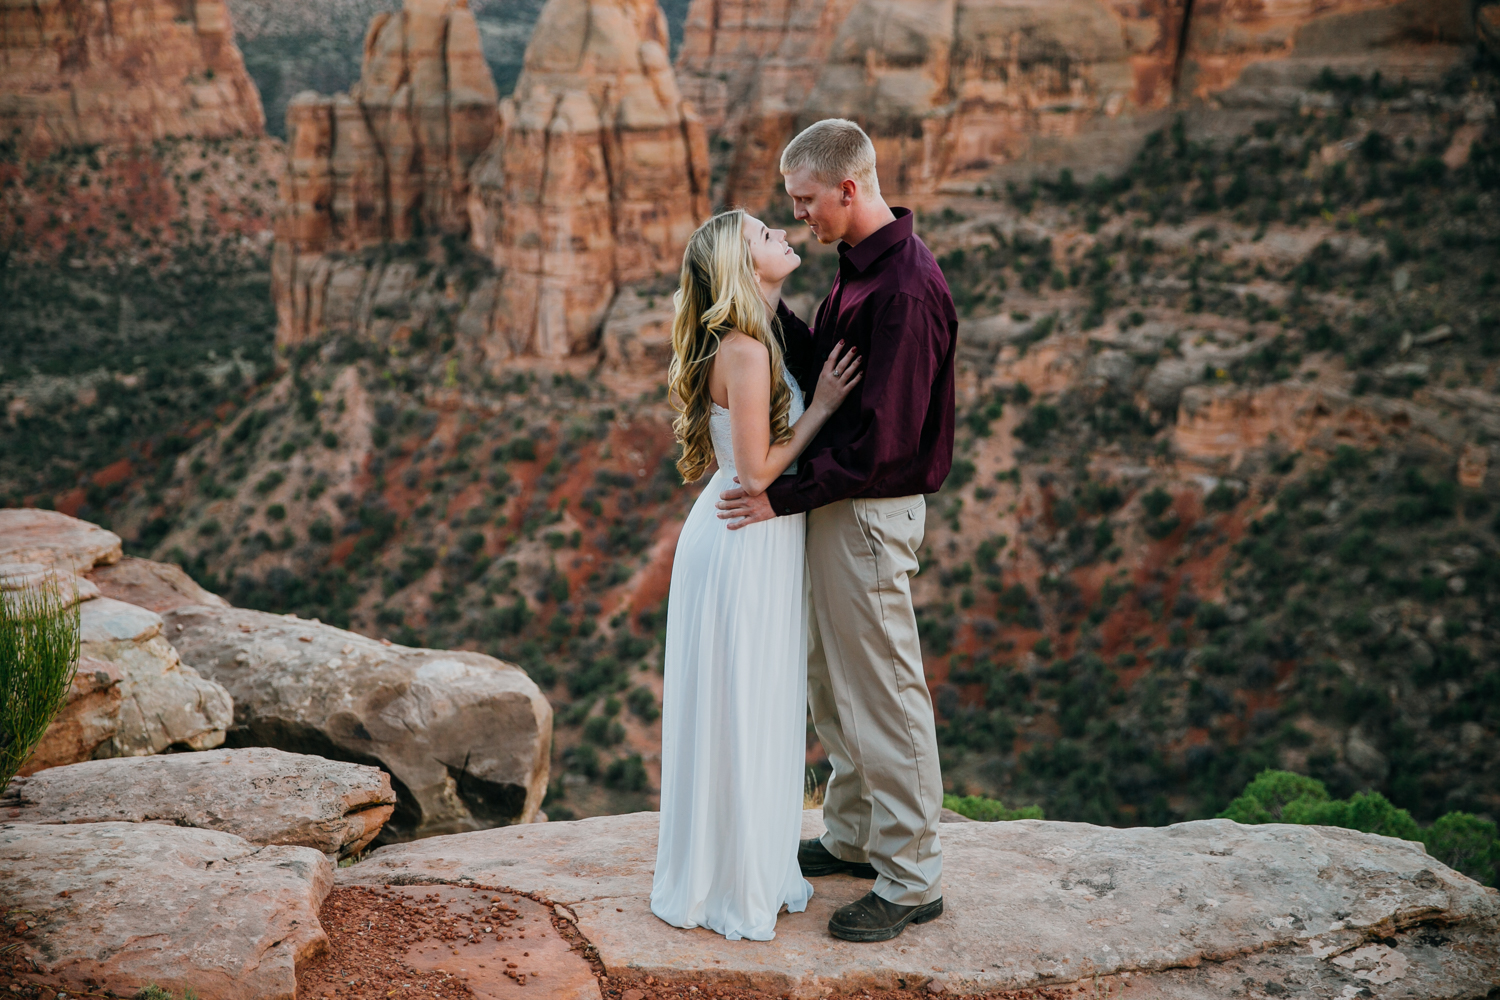 grand-junction-colorado-monument-wedding-photographer-engagements-29.jpg